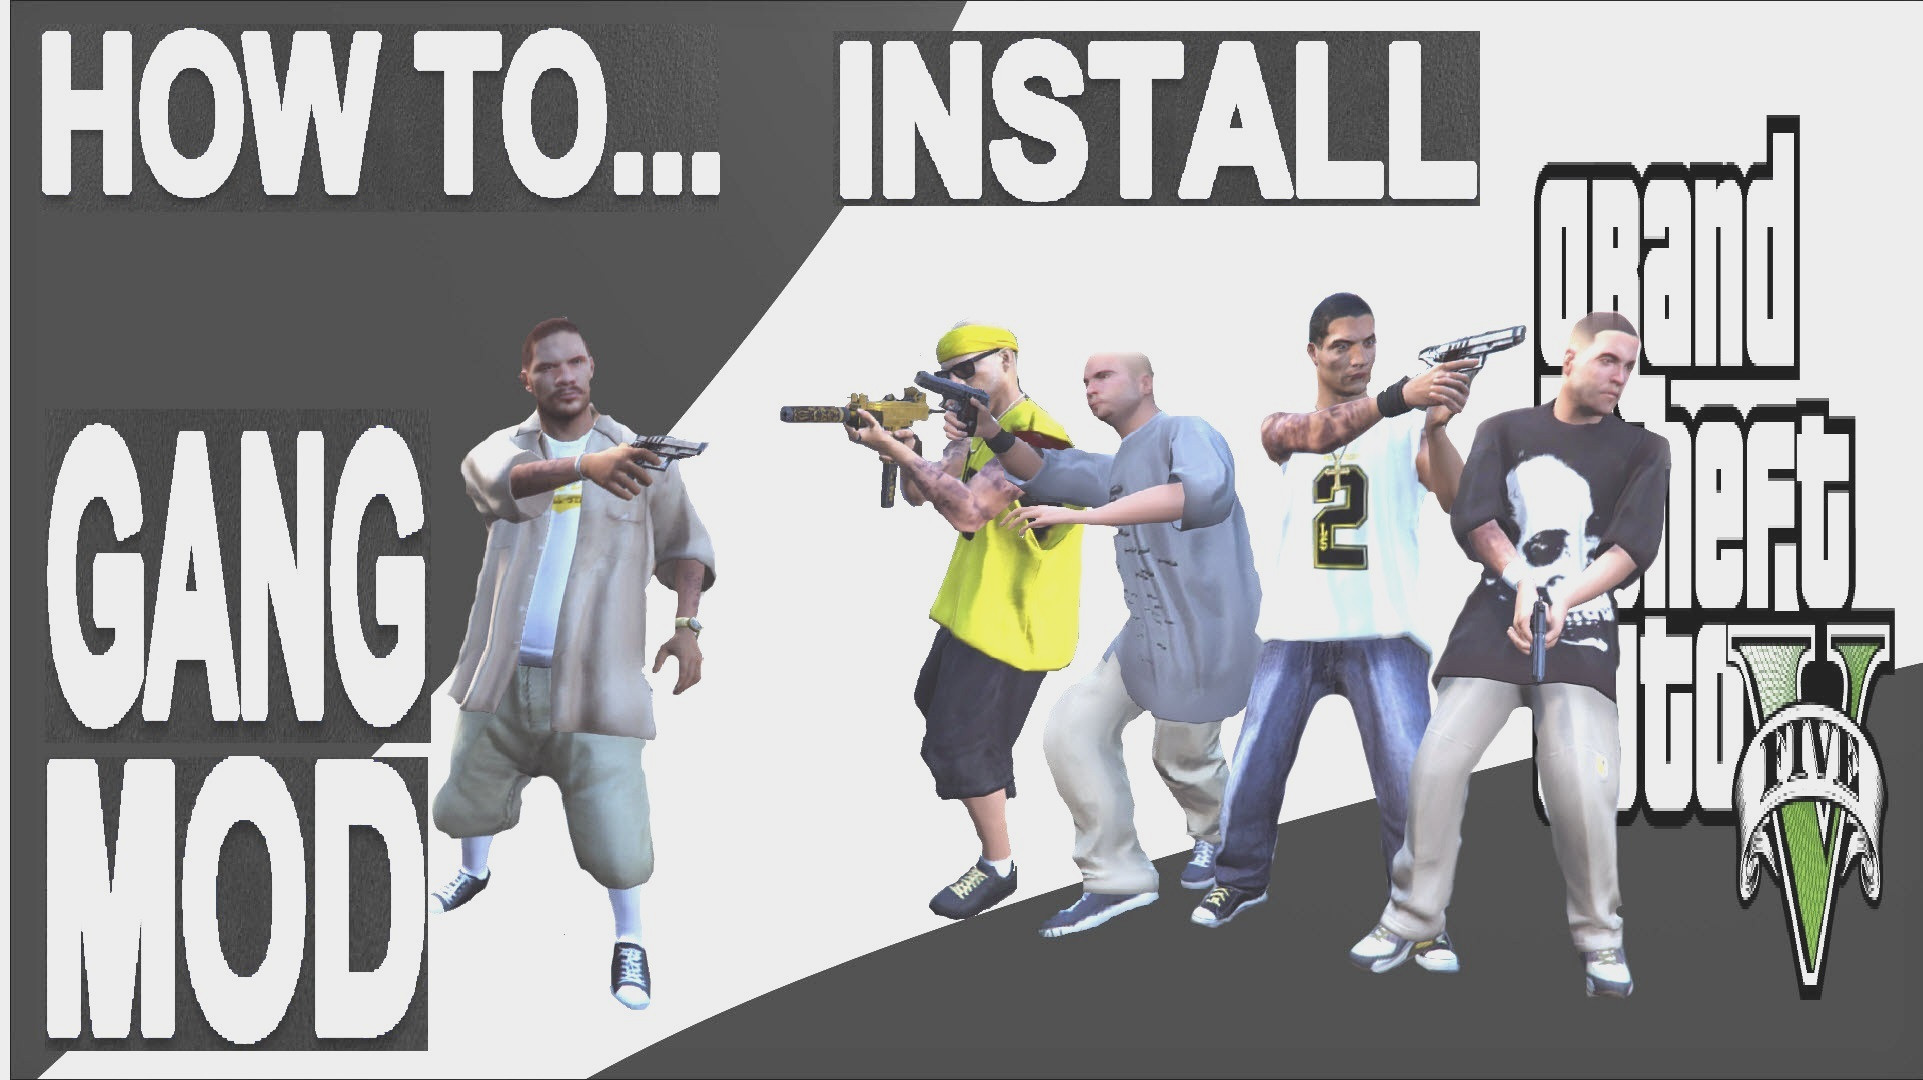 HOW TO DOWNLOAD, INSTALL,SET-UP,PLAY GANG MOD ON GTA 5 (step by step